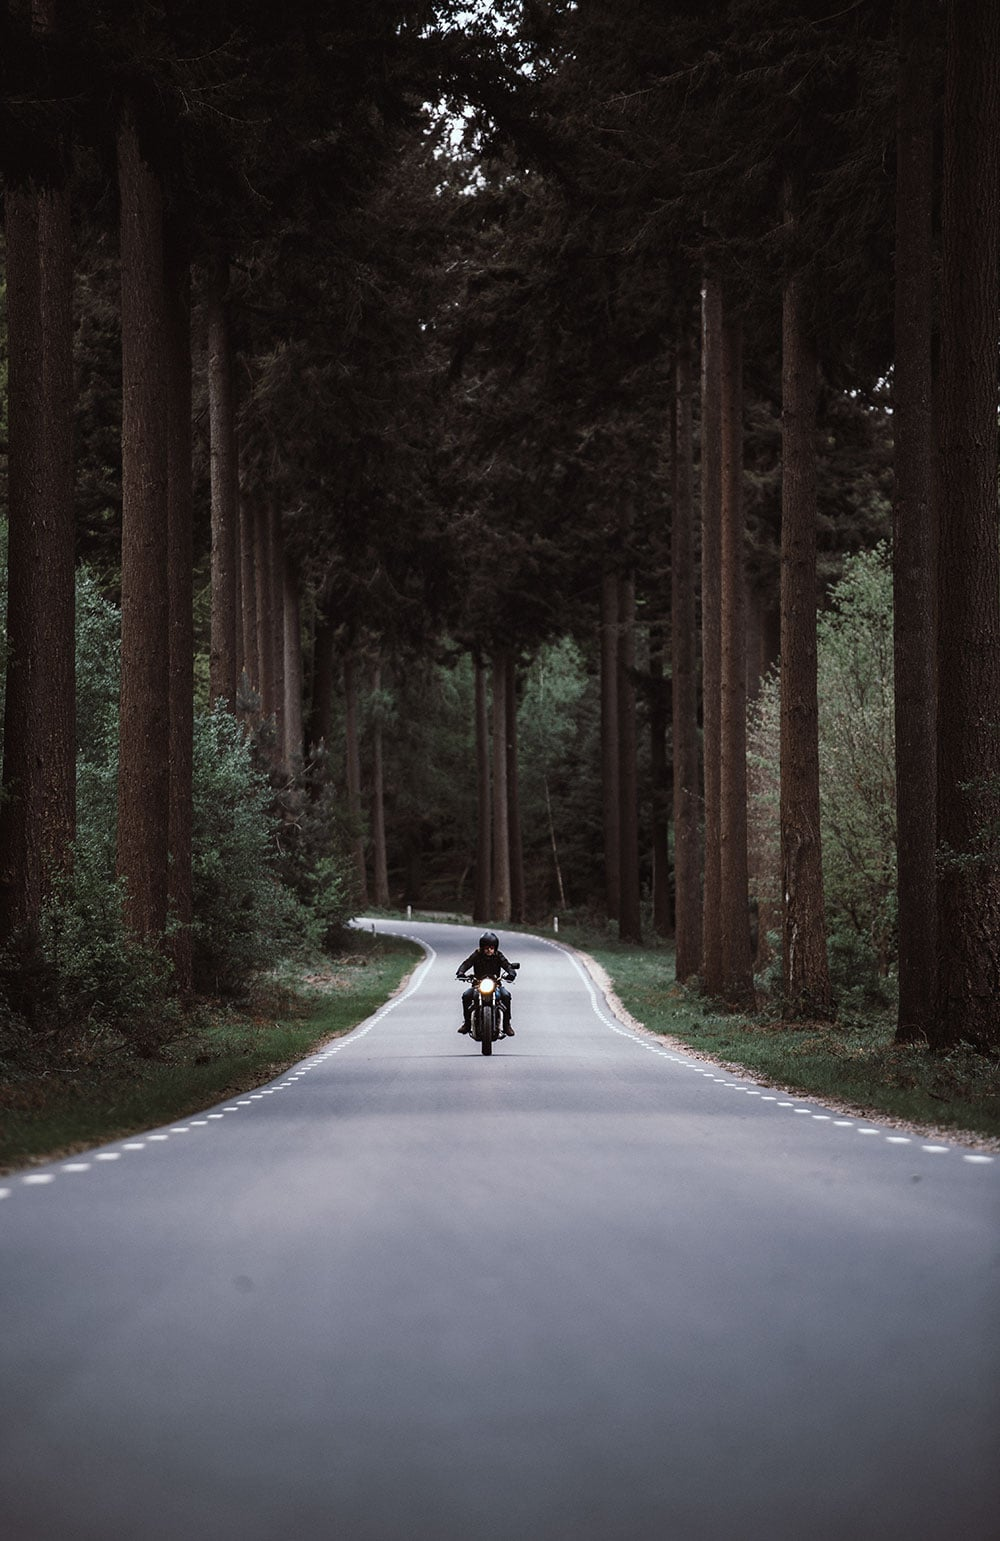 Man driving motorbike through forest